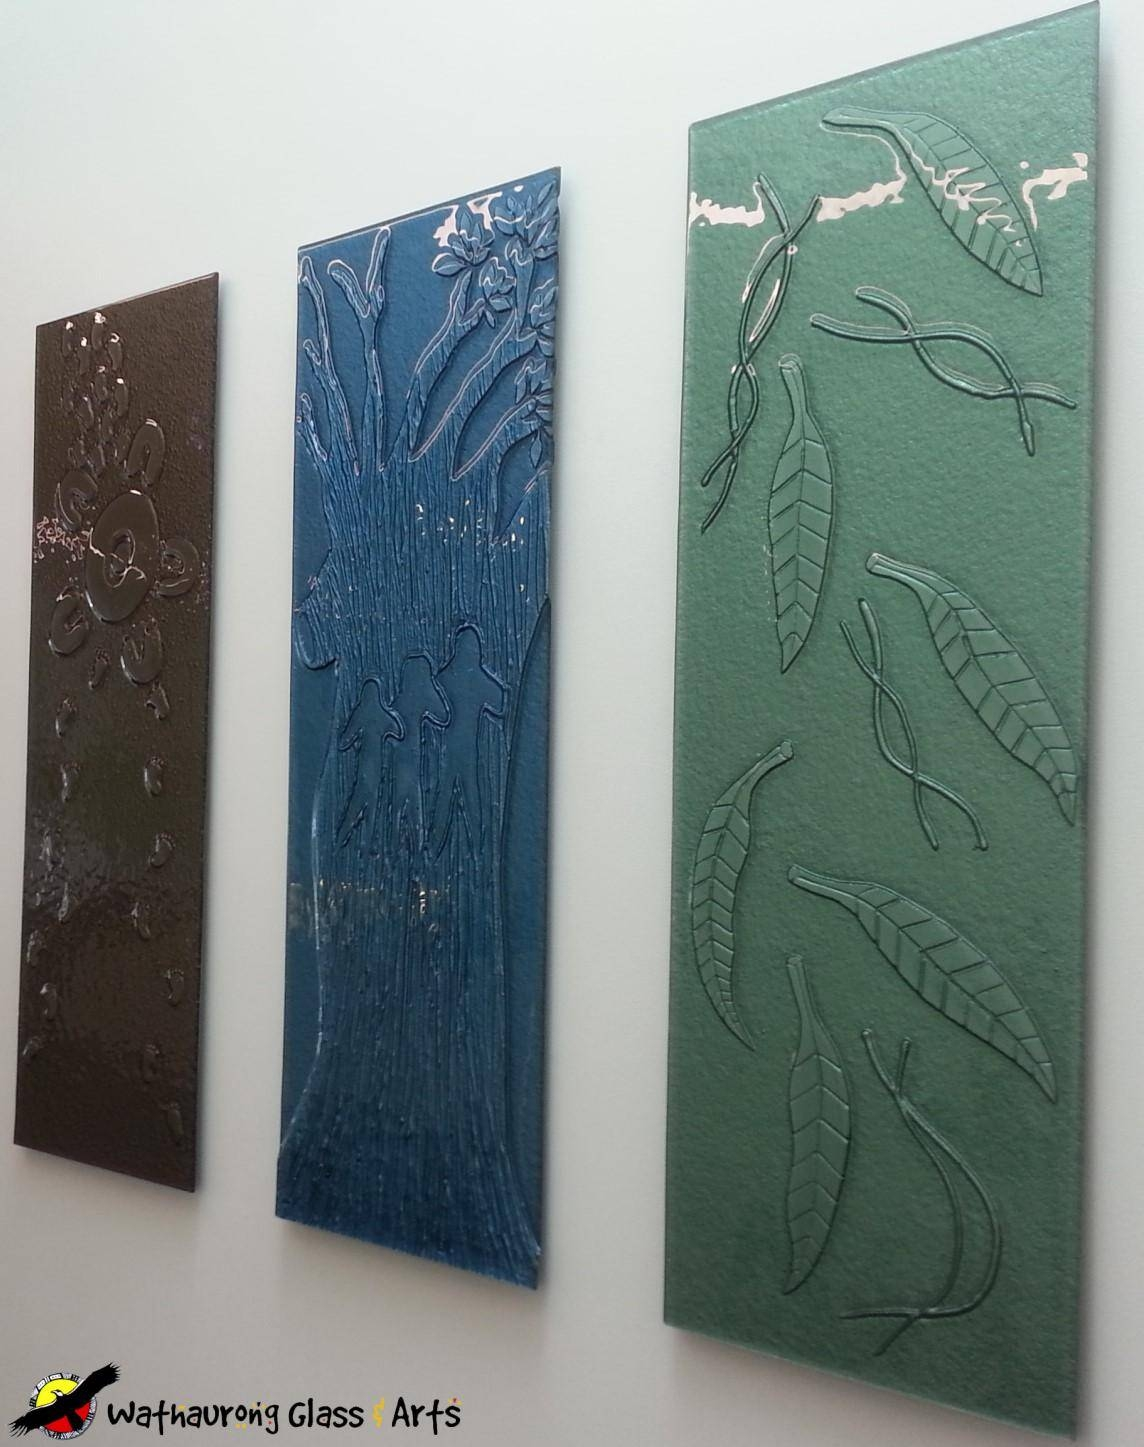 Internal Glass Wall Art – Wathaurong Glass With Regard To Most Up To Date Glass Wall Art Panels (View 4 of 20)